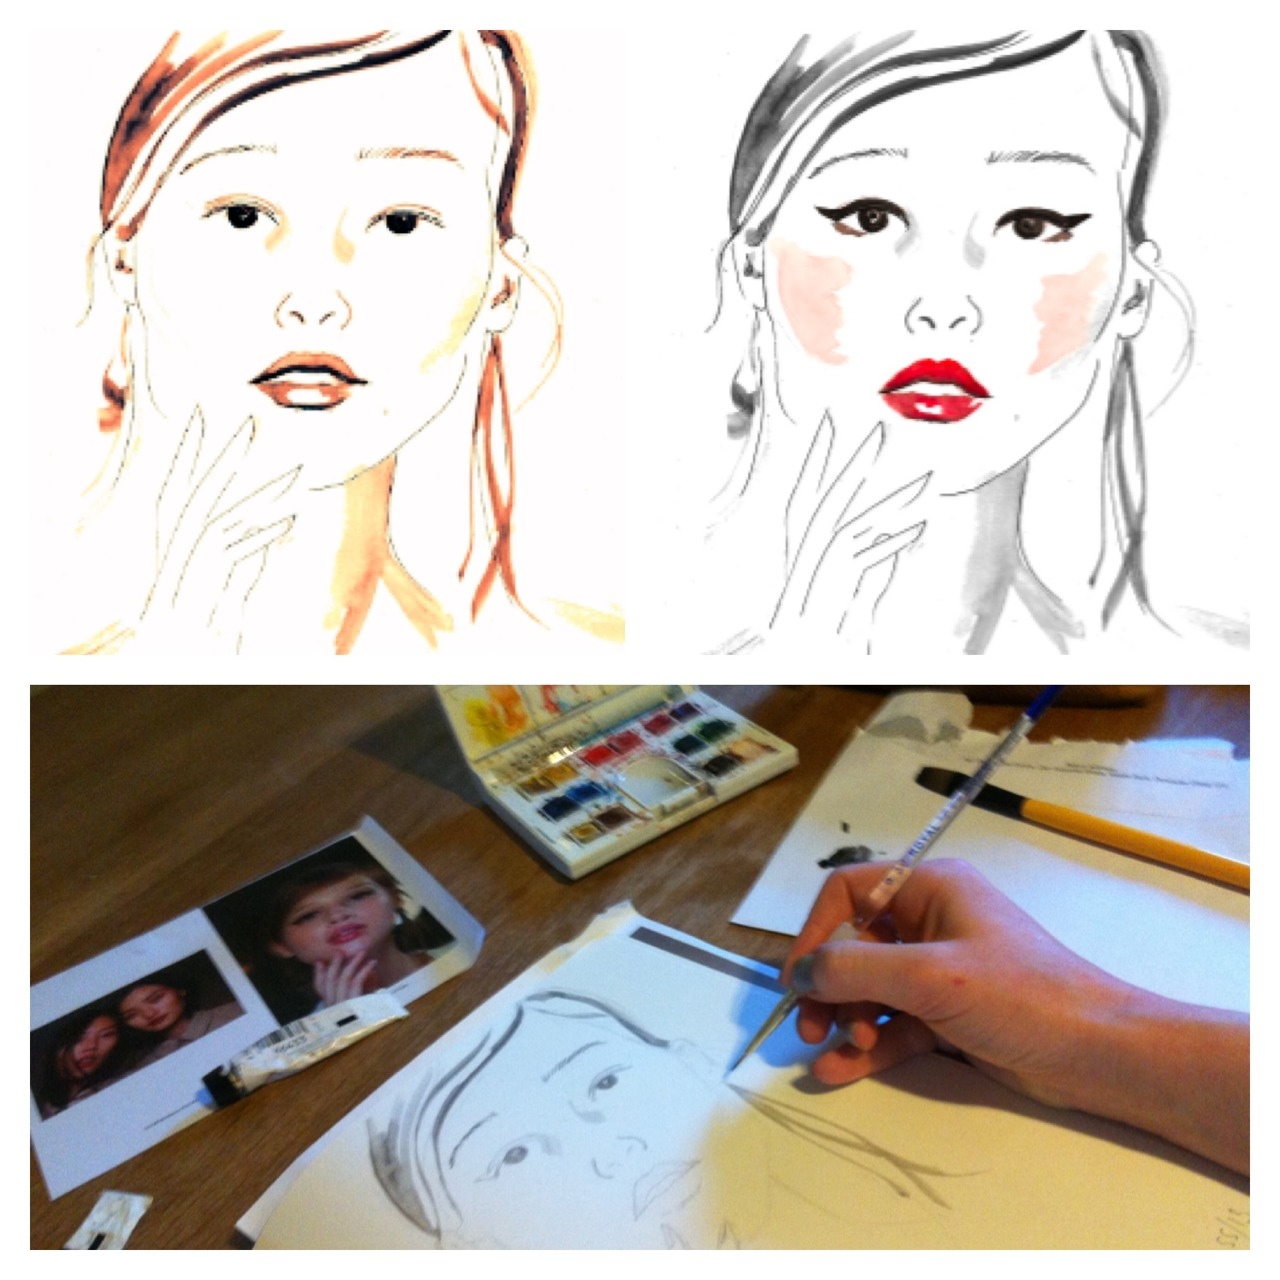 The making of my illustration of Canadian model @Anais_pouliot from @models_1 backstage at London Fashion Weeks Mulberry SS13 show. It may have been some time ago now but what with this first bout of sunshine, I've got a springy spring in my mind. Loved this model in particular for her typically Mulberry English rose appeal and lips I just want to draw! The makeup by @Matthiasvanhoof using @LOrealParisUK giving her a dewy look to go with her severe flicks and loose boho hair by @Sammcknight1. Oh to be an English rose Mulberry girl!    Drawn in pencil, then I used watercolours and fine liner. Scanned in is the original of just the face and then worked over again in bright watercolours with the Mulberry makeup #illustration